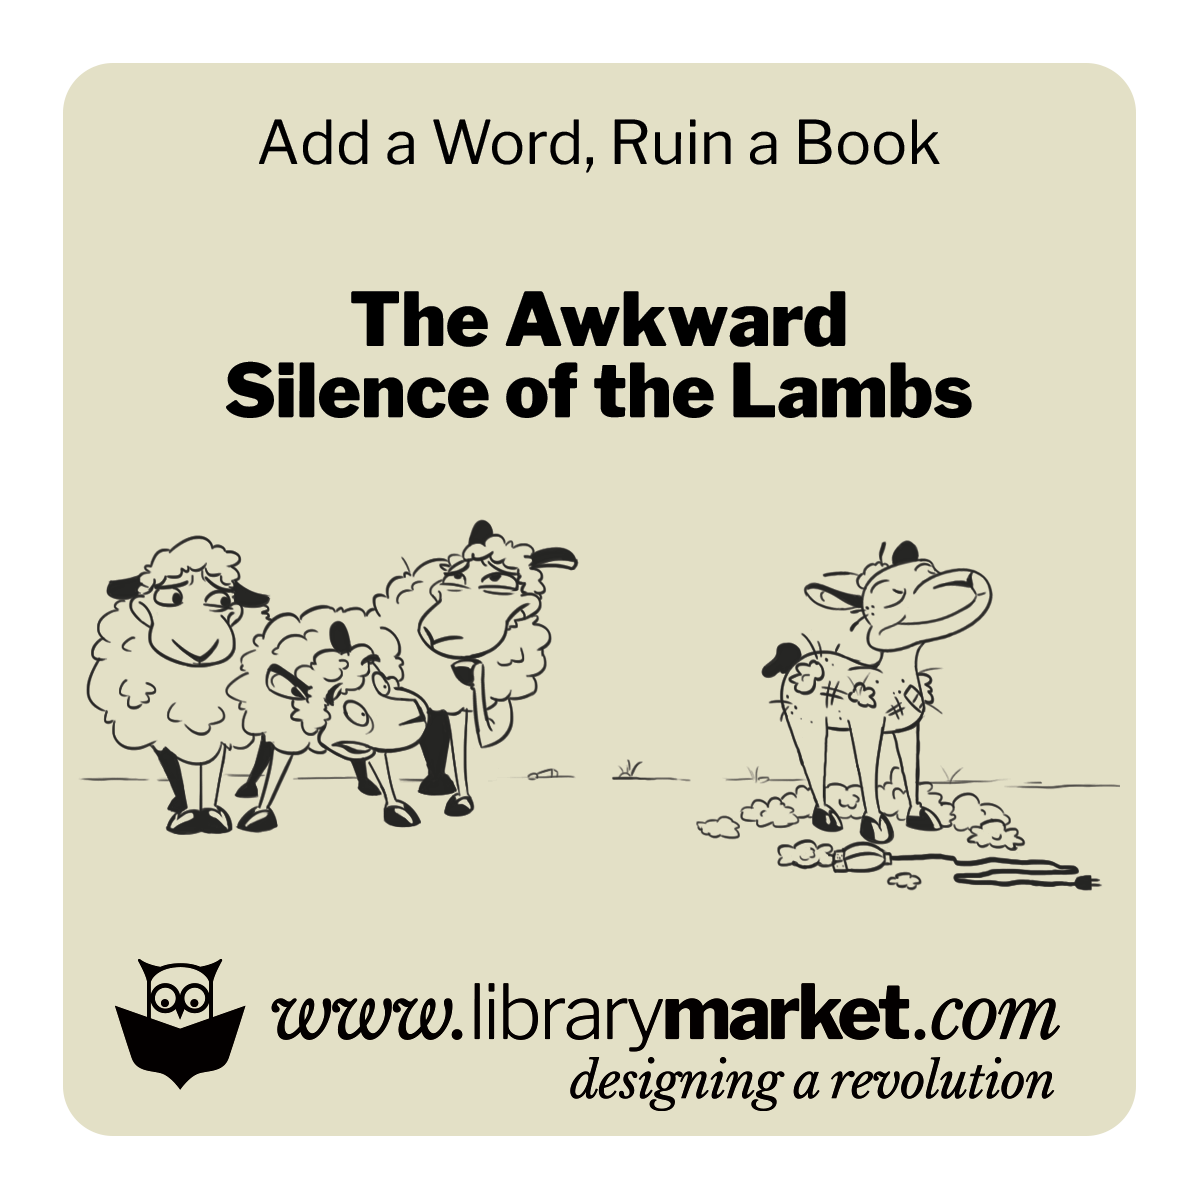 Library Market Add-a-Word Coaster - The Awkward Silence of the Lambs